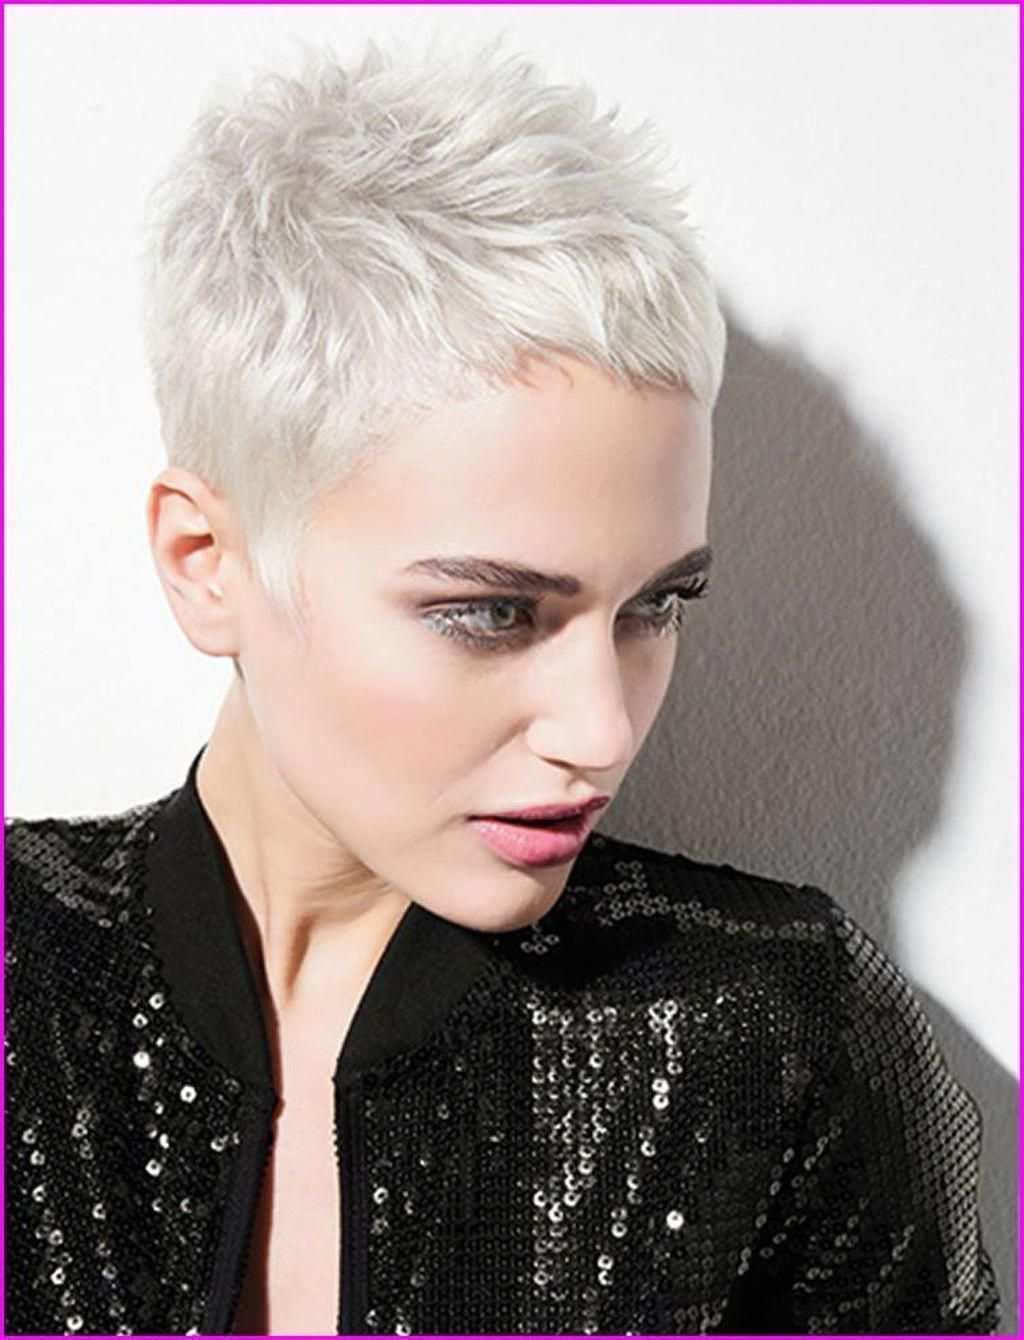 23++ Hairstyles for gray hair round face ideas in 2021